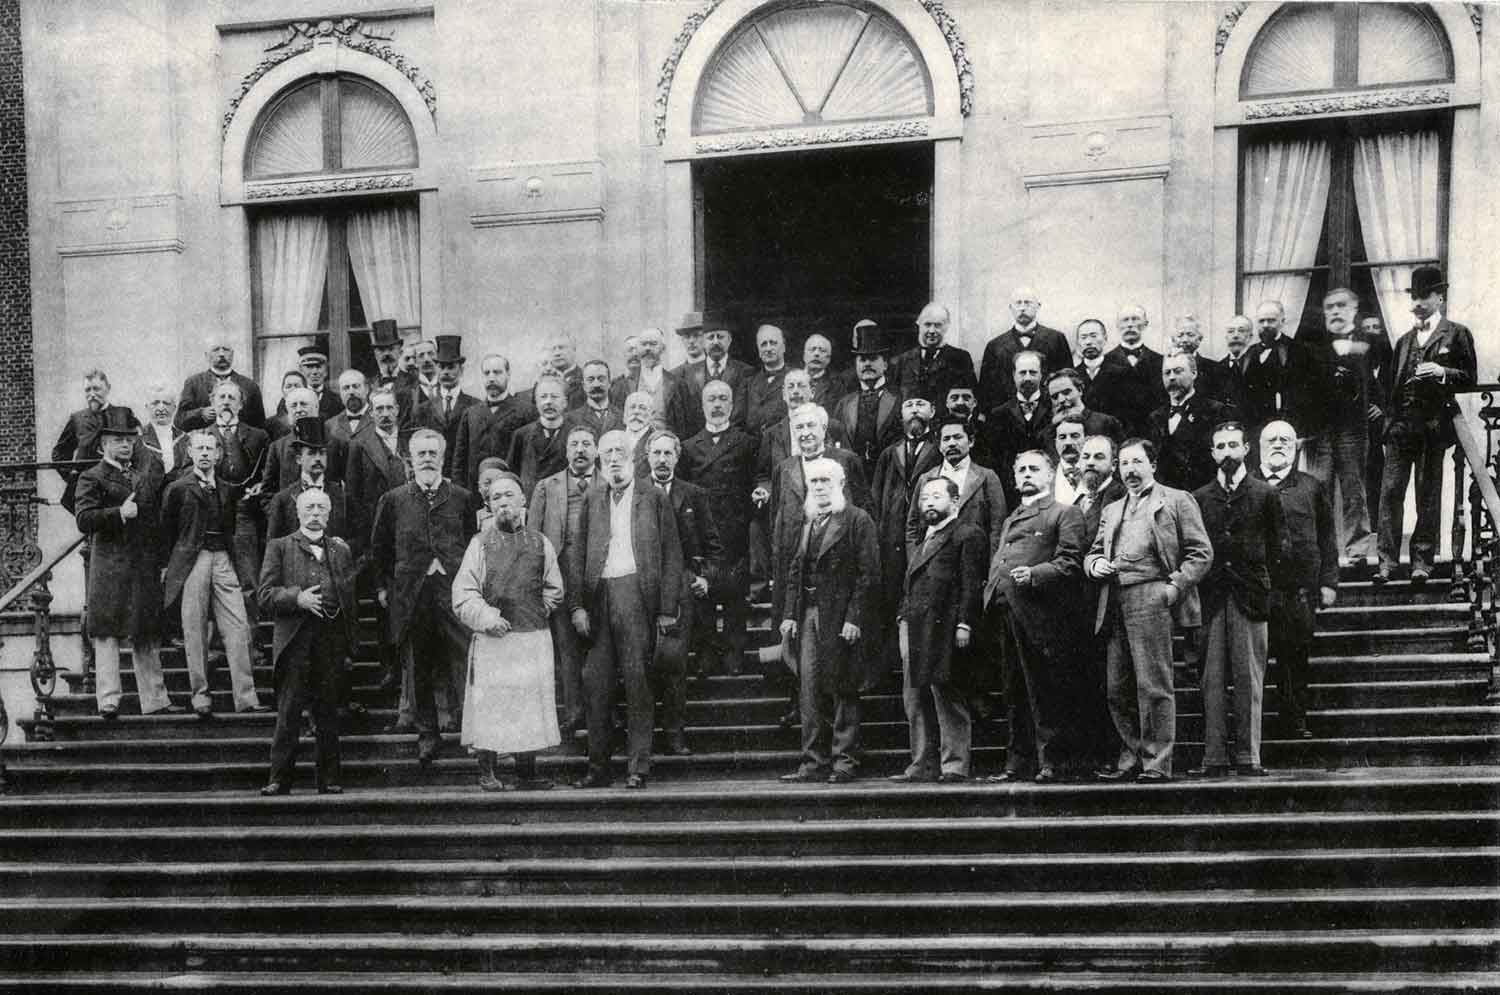 Delegates of first Hague Peace Conference, 1899 Huis Ten Bosch